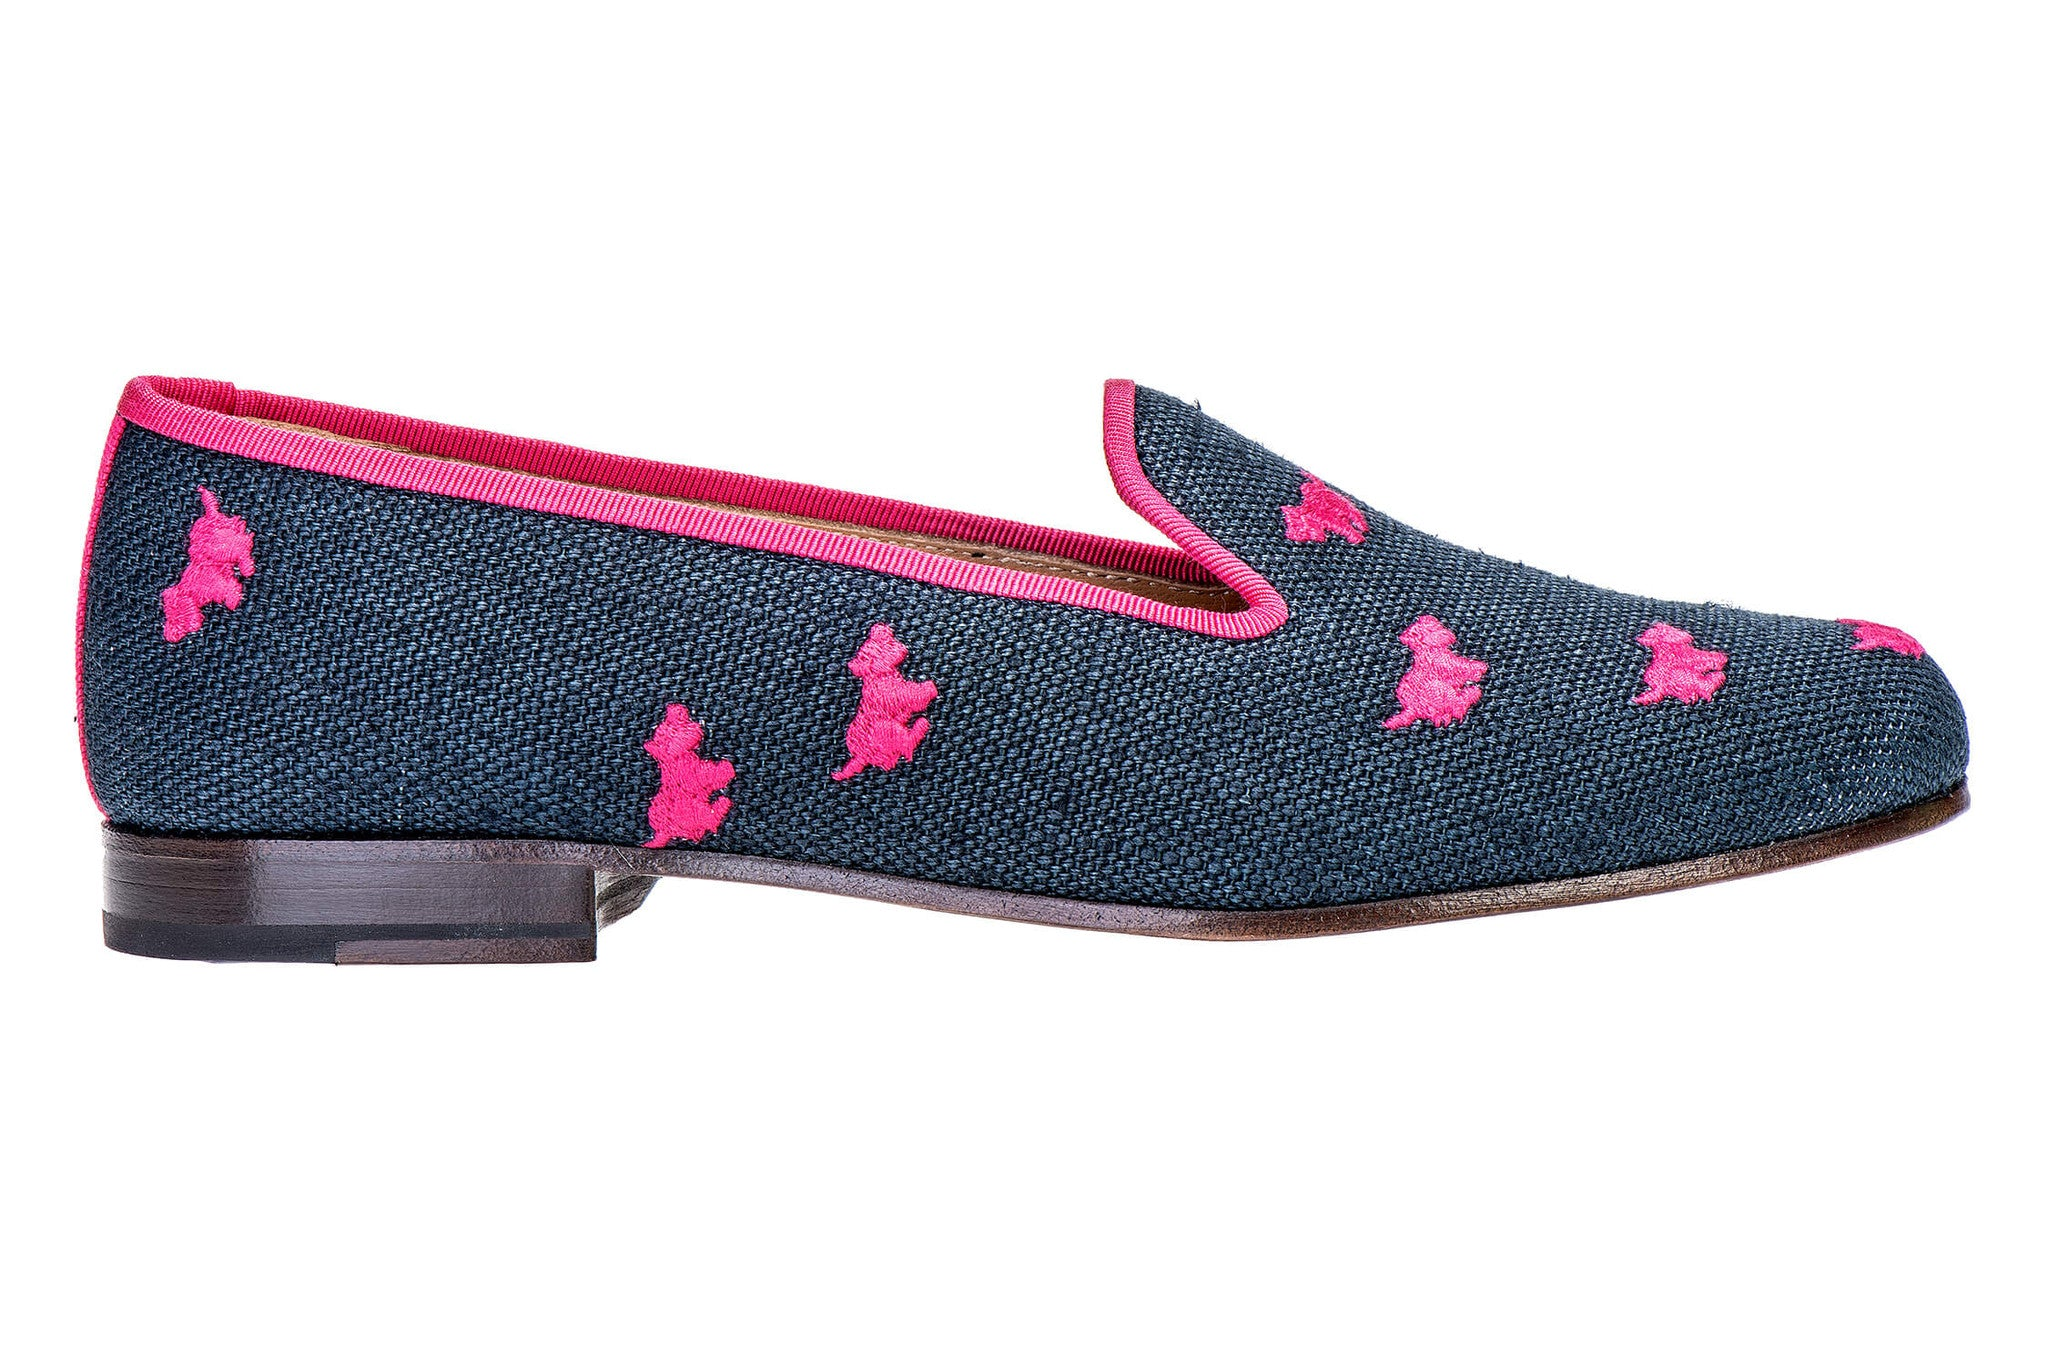 K9 Women Slipper